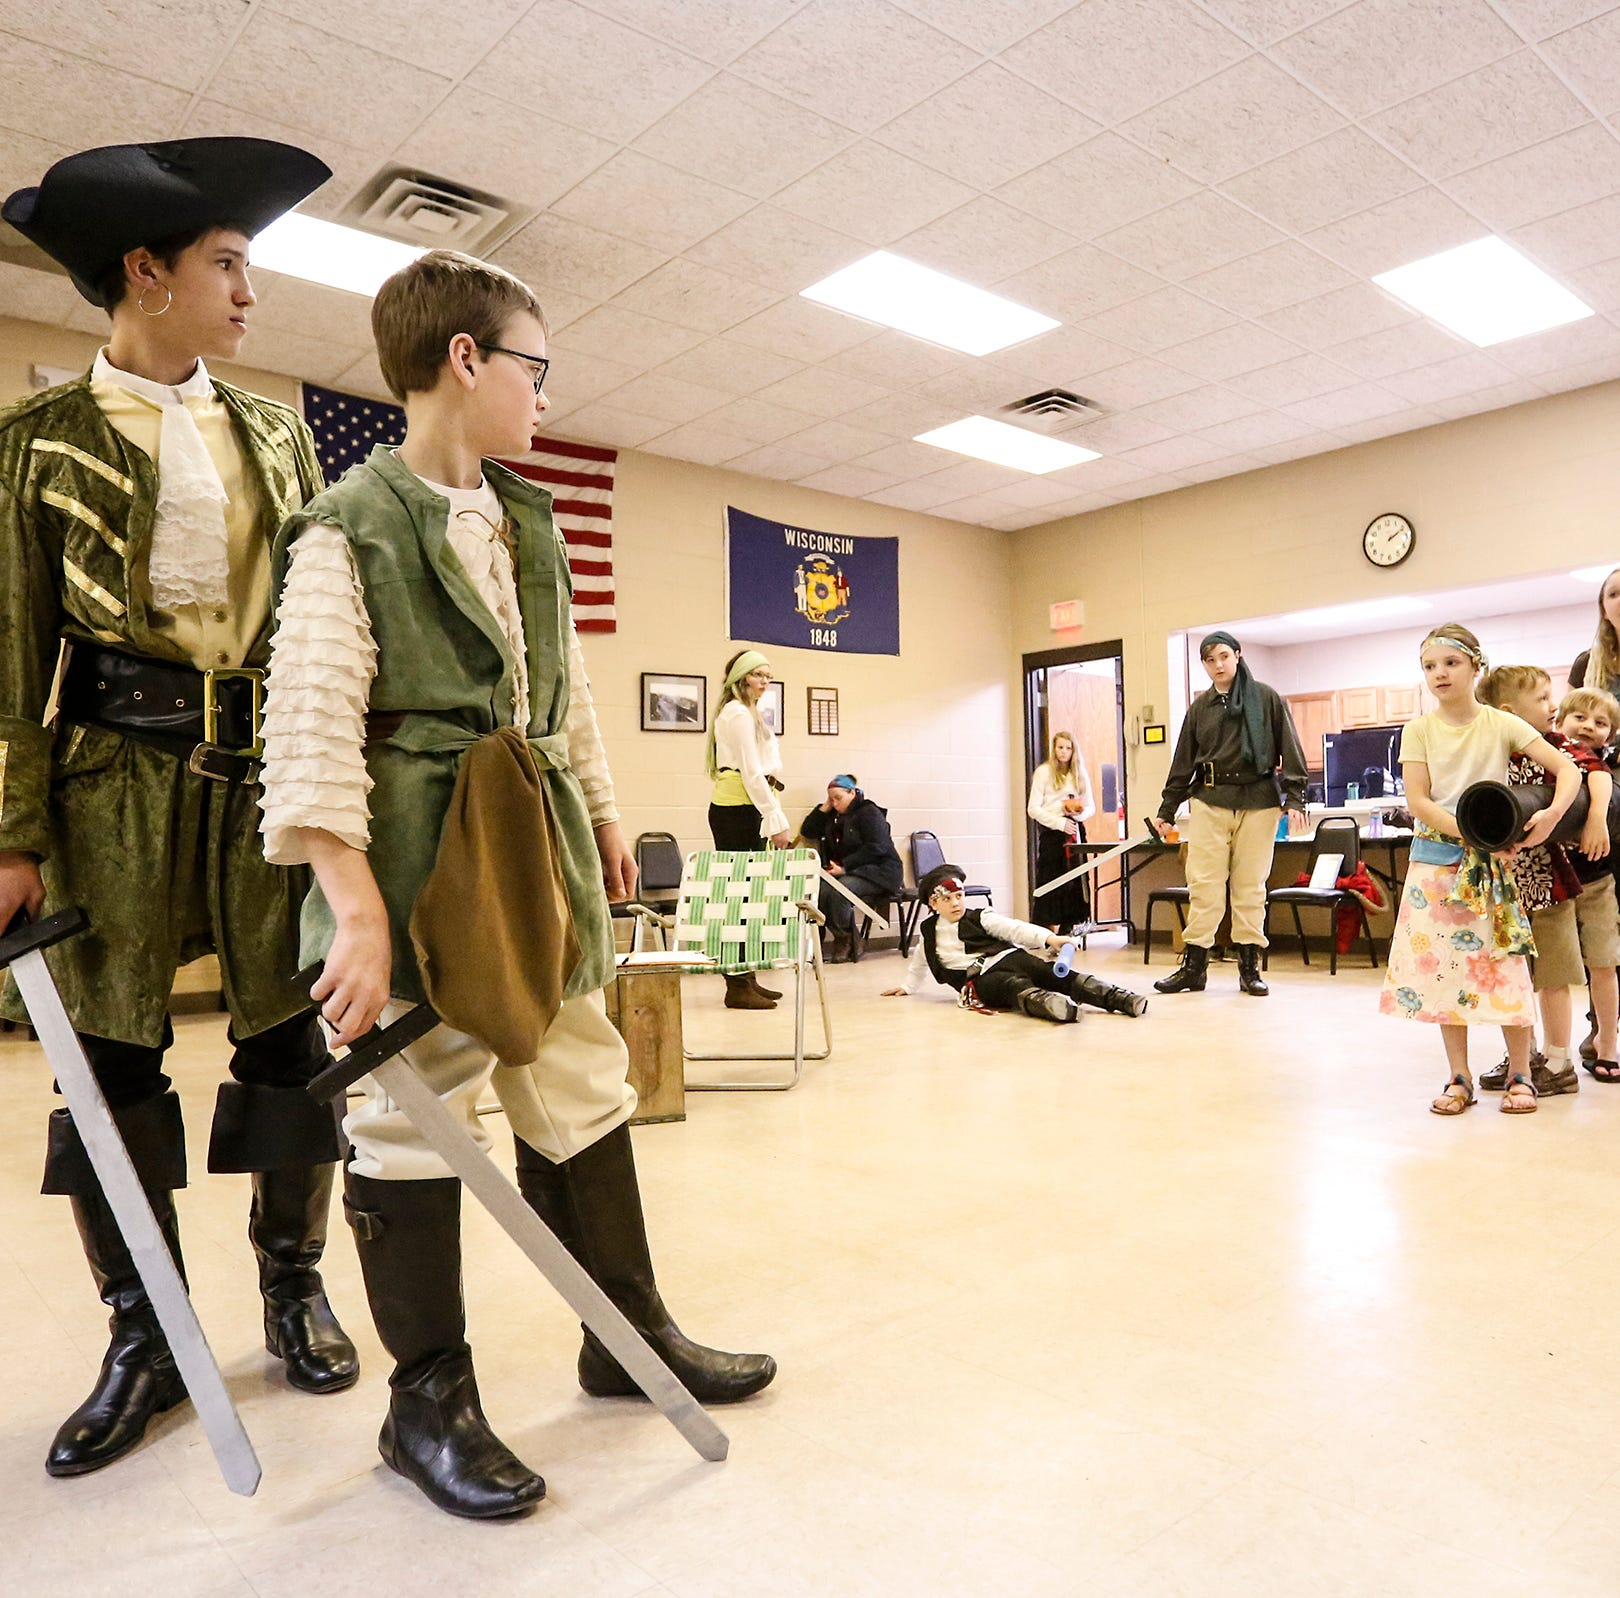 Homeschool Performing Arts Club brings 'Jolly Roger and the Pirate Queen' to life